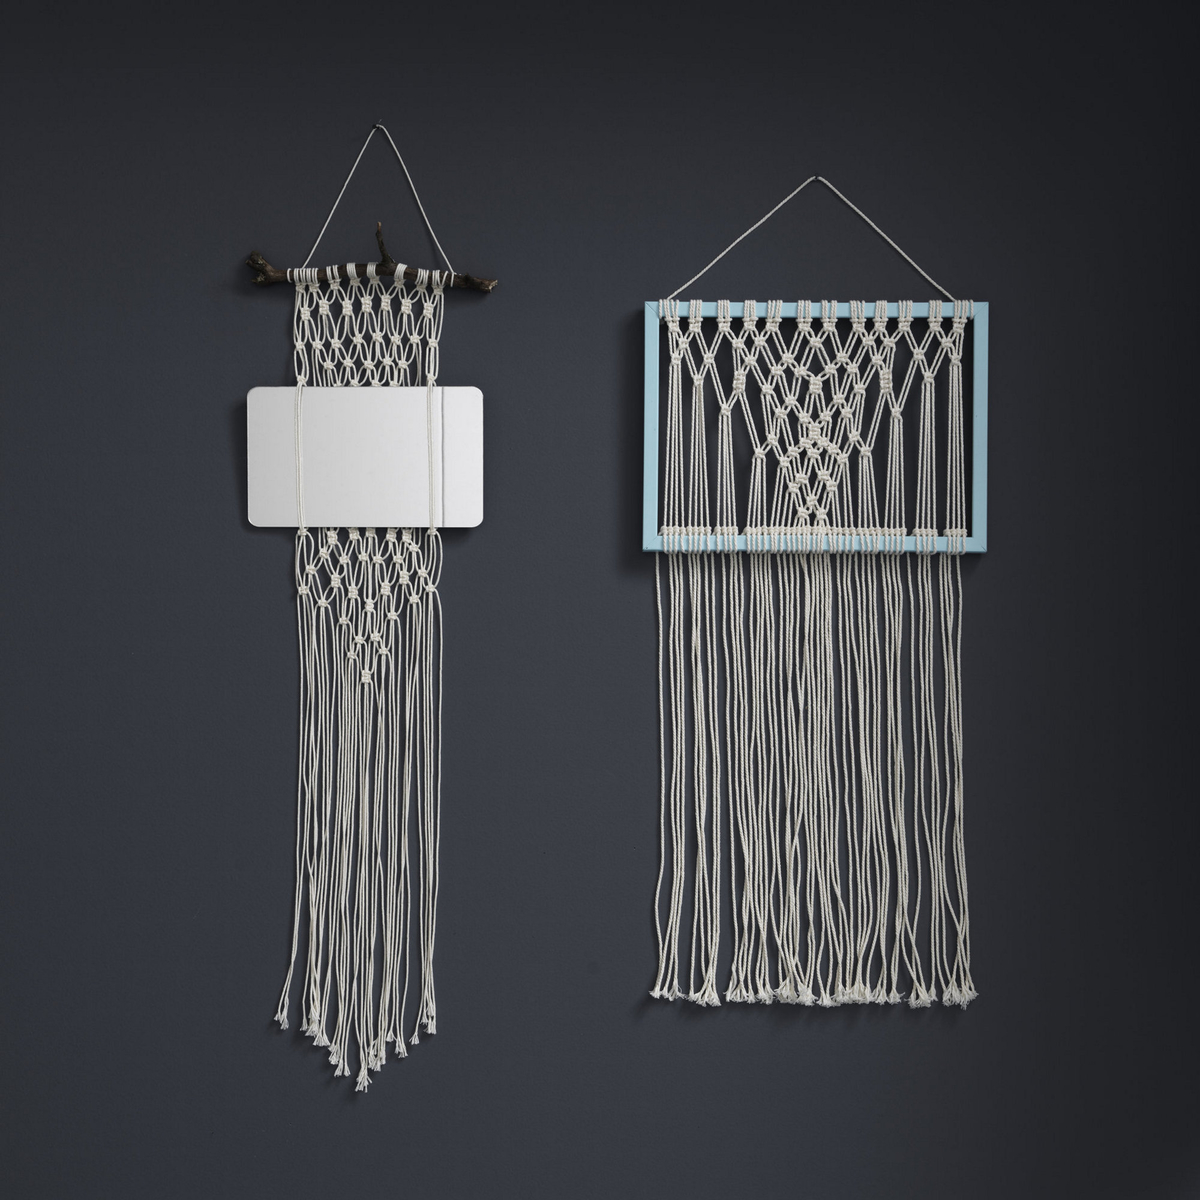 Weave a wall hanging or two